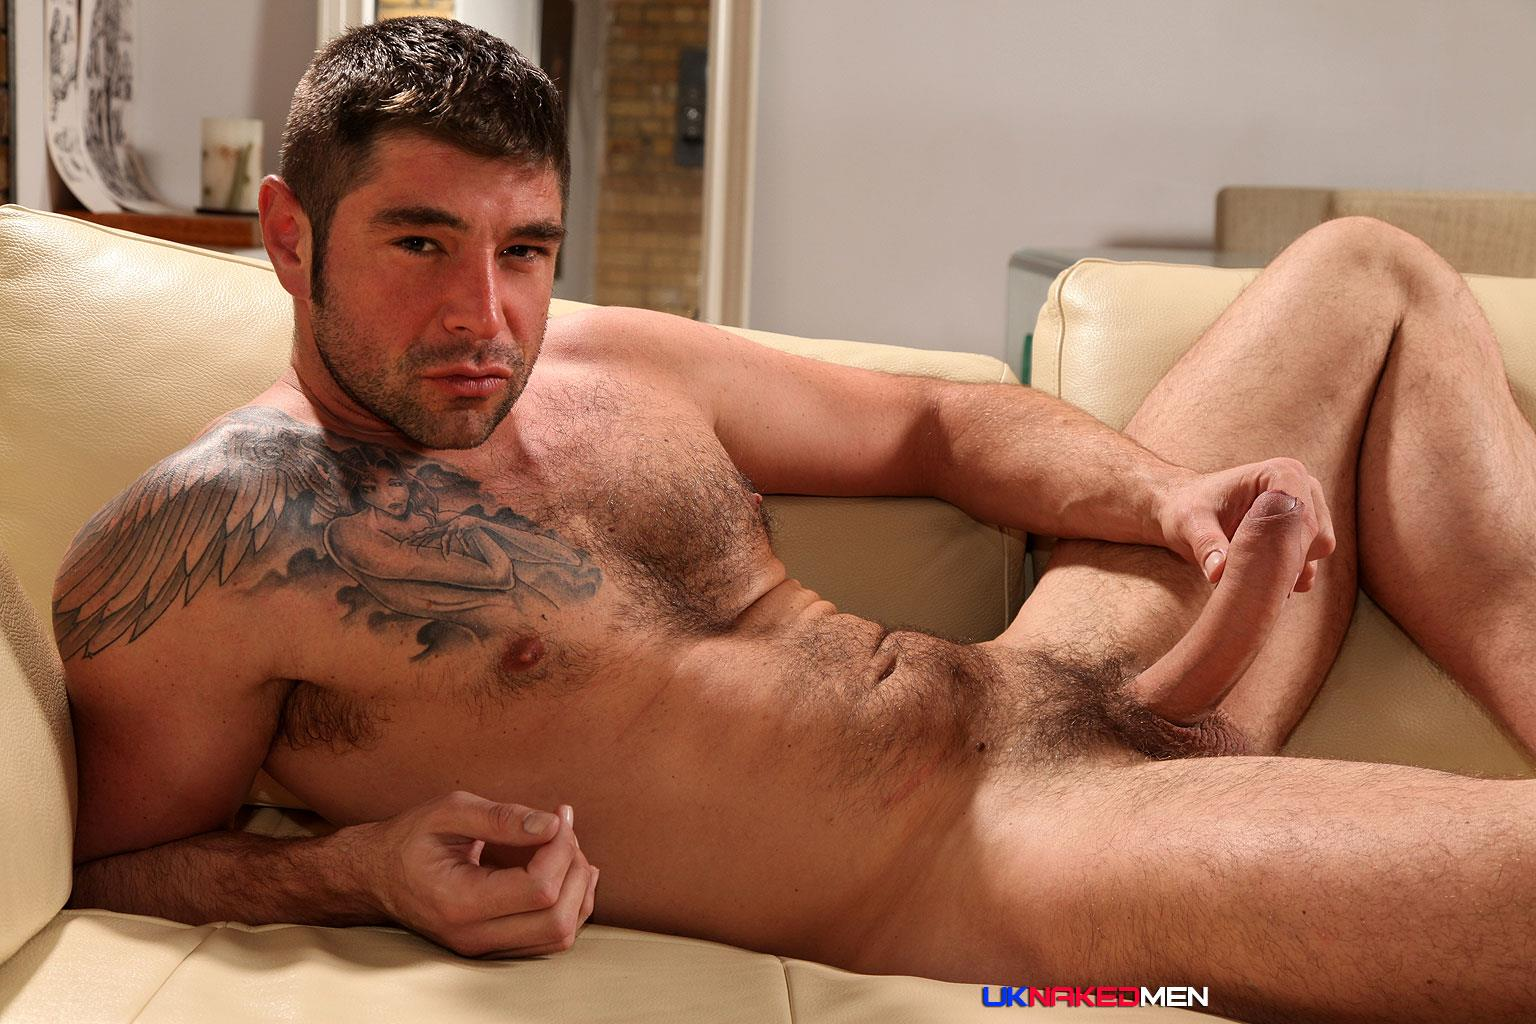 hairy chested muscular men